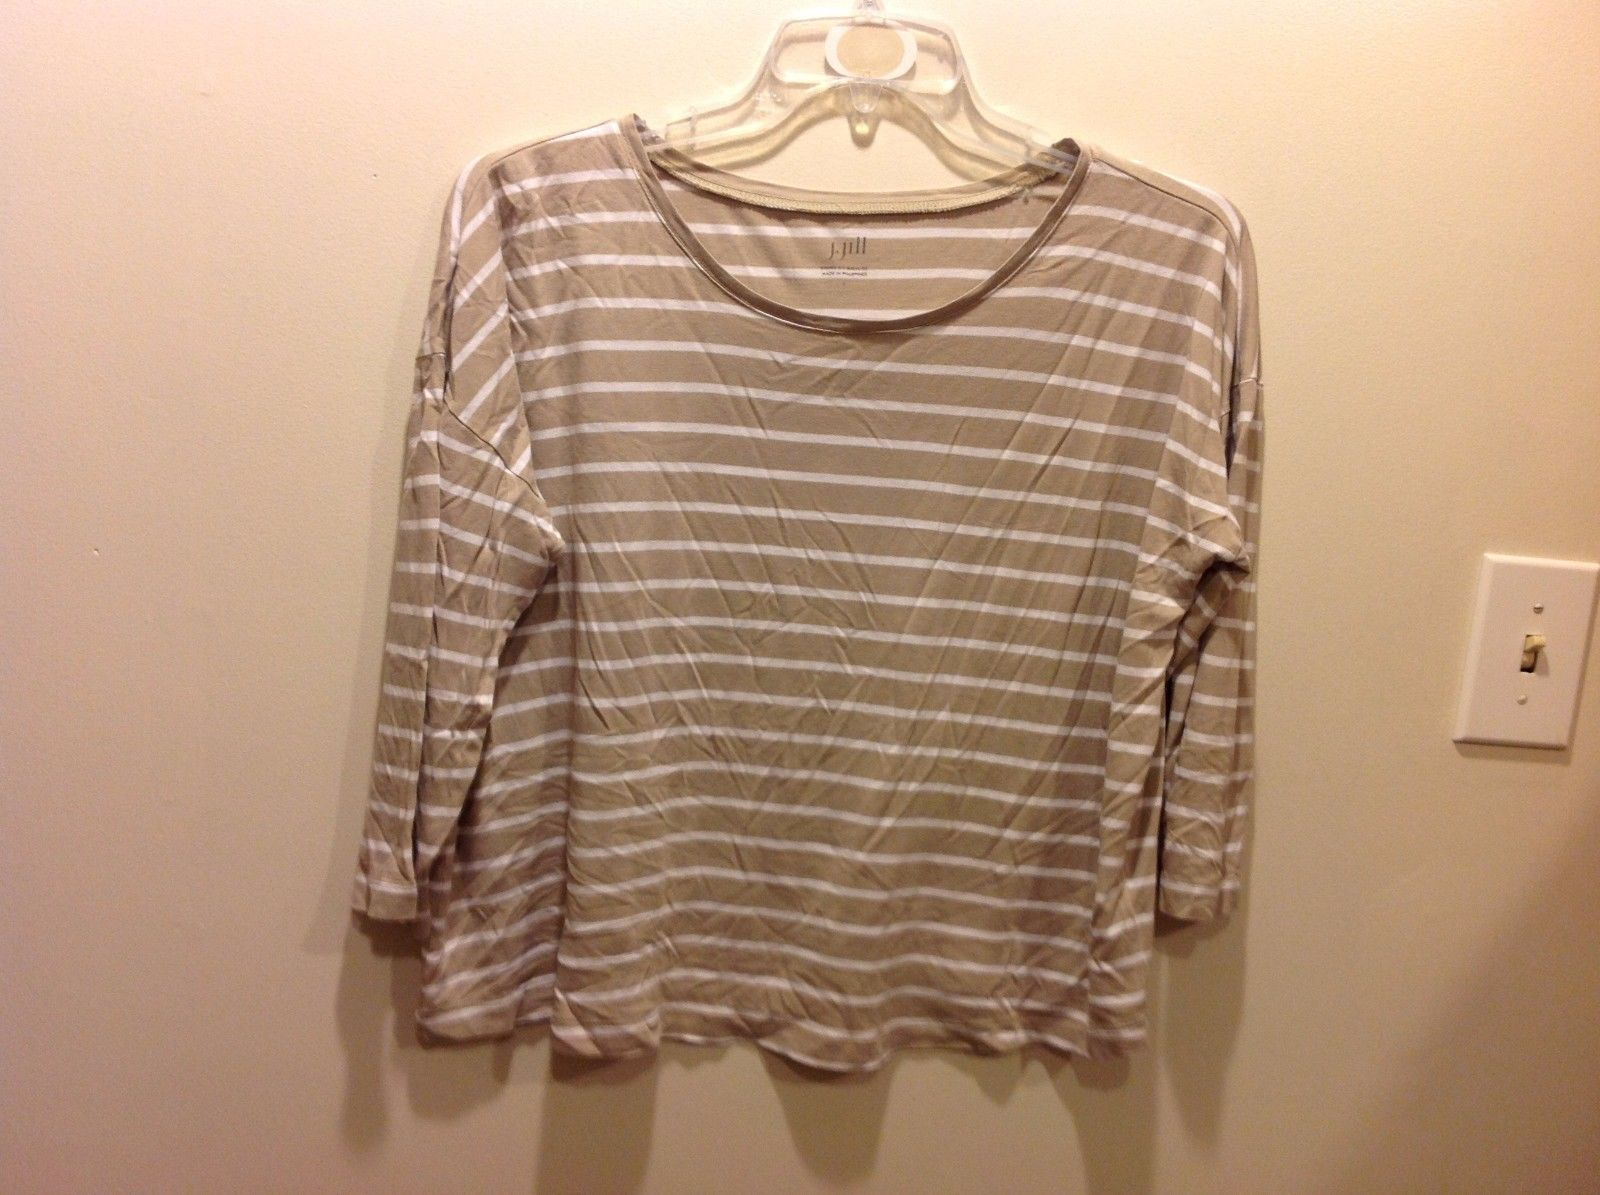 J Jill Taupe White Horizontally Striped Top Sz LG